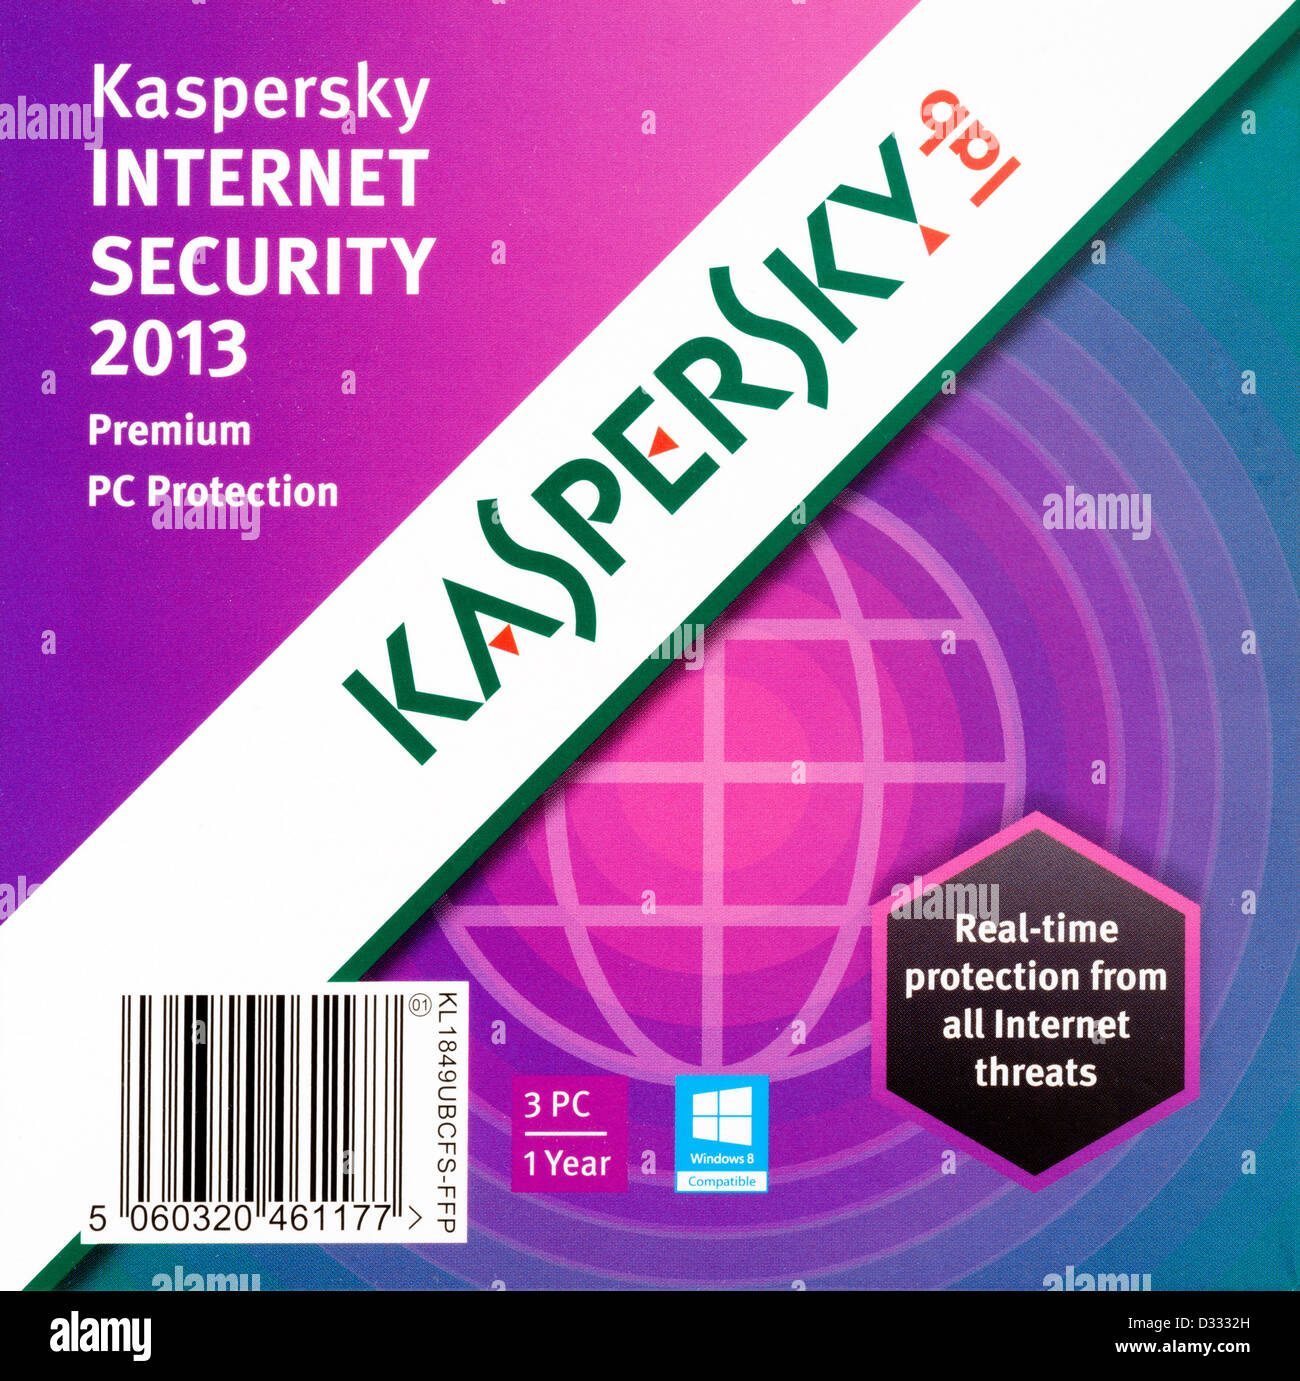 Kaspersky Internet Security 2013 anti virus software - Stock Image